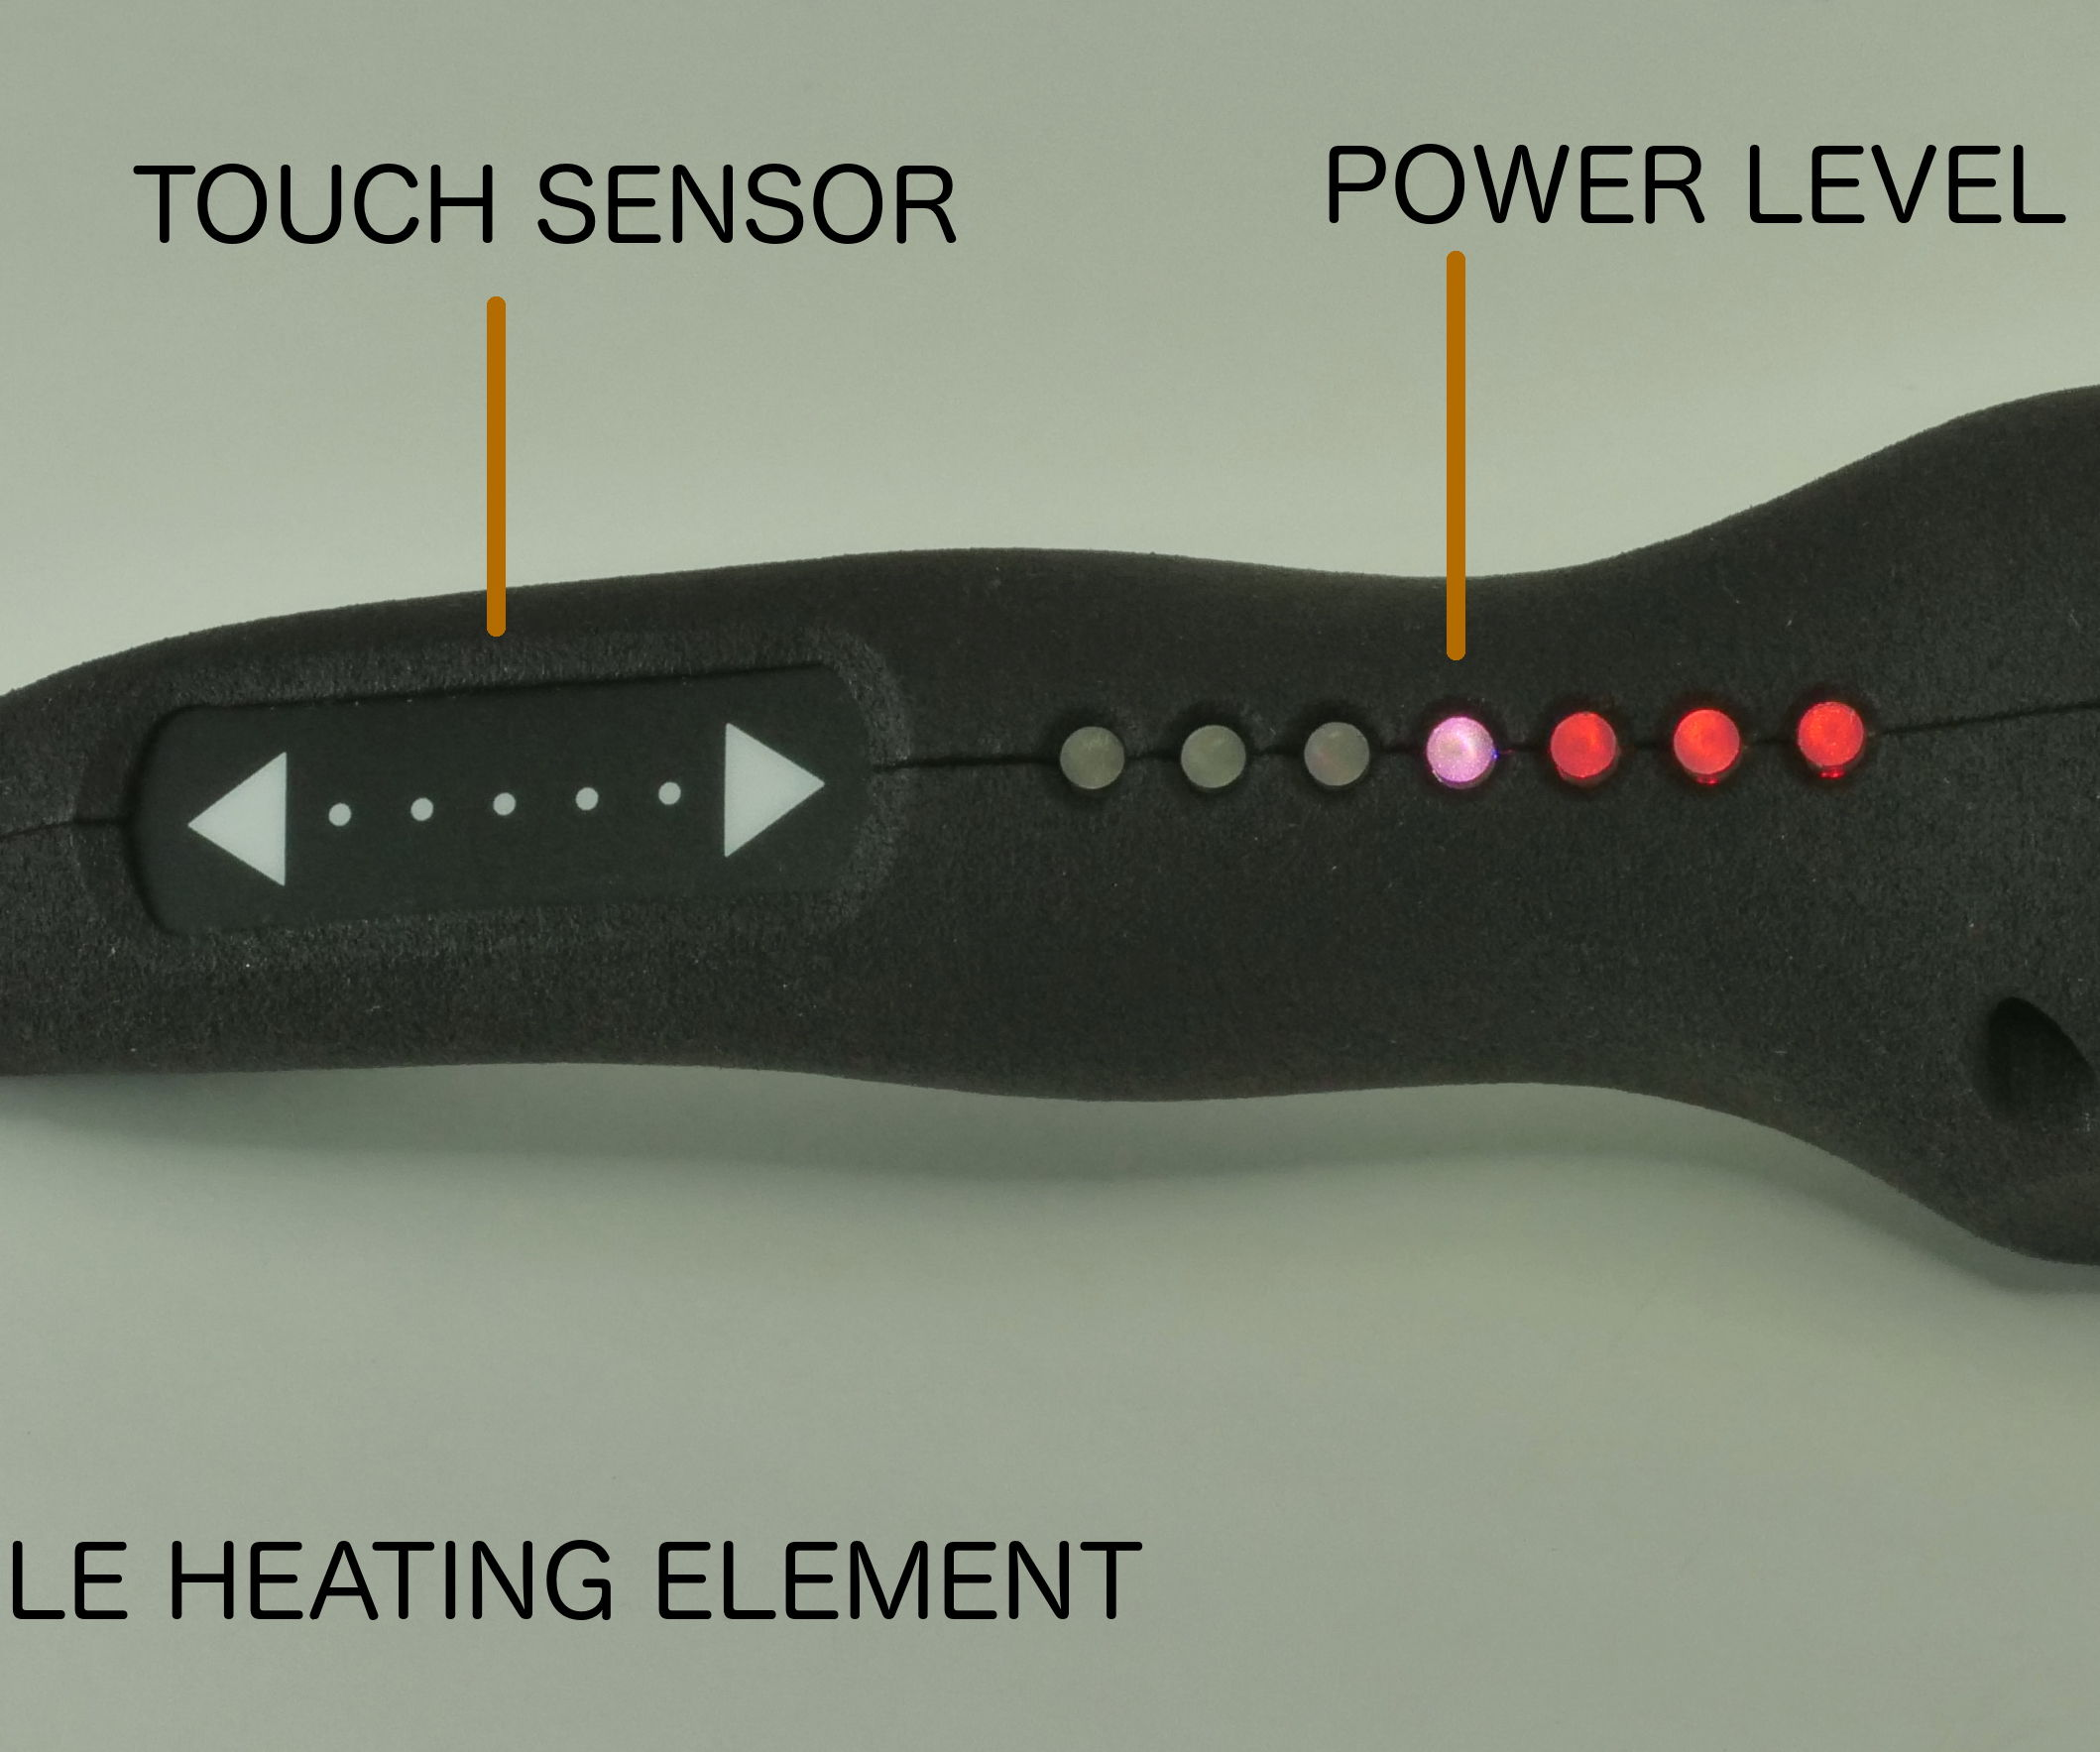 Solderdoodle Plus: USB Rechargeable Soldering Iron With Touch Control, LED Feedback, and 3D Printed Case